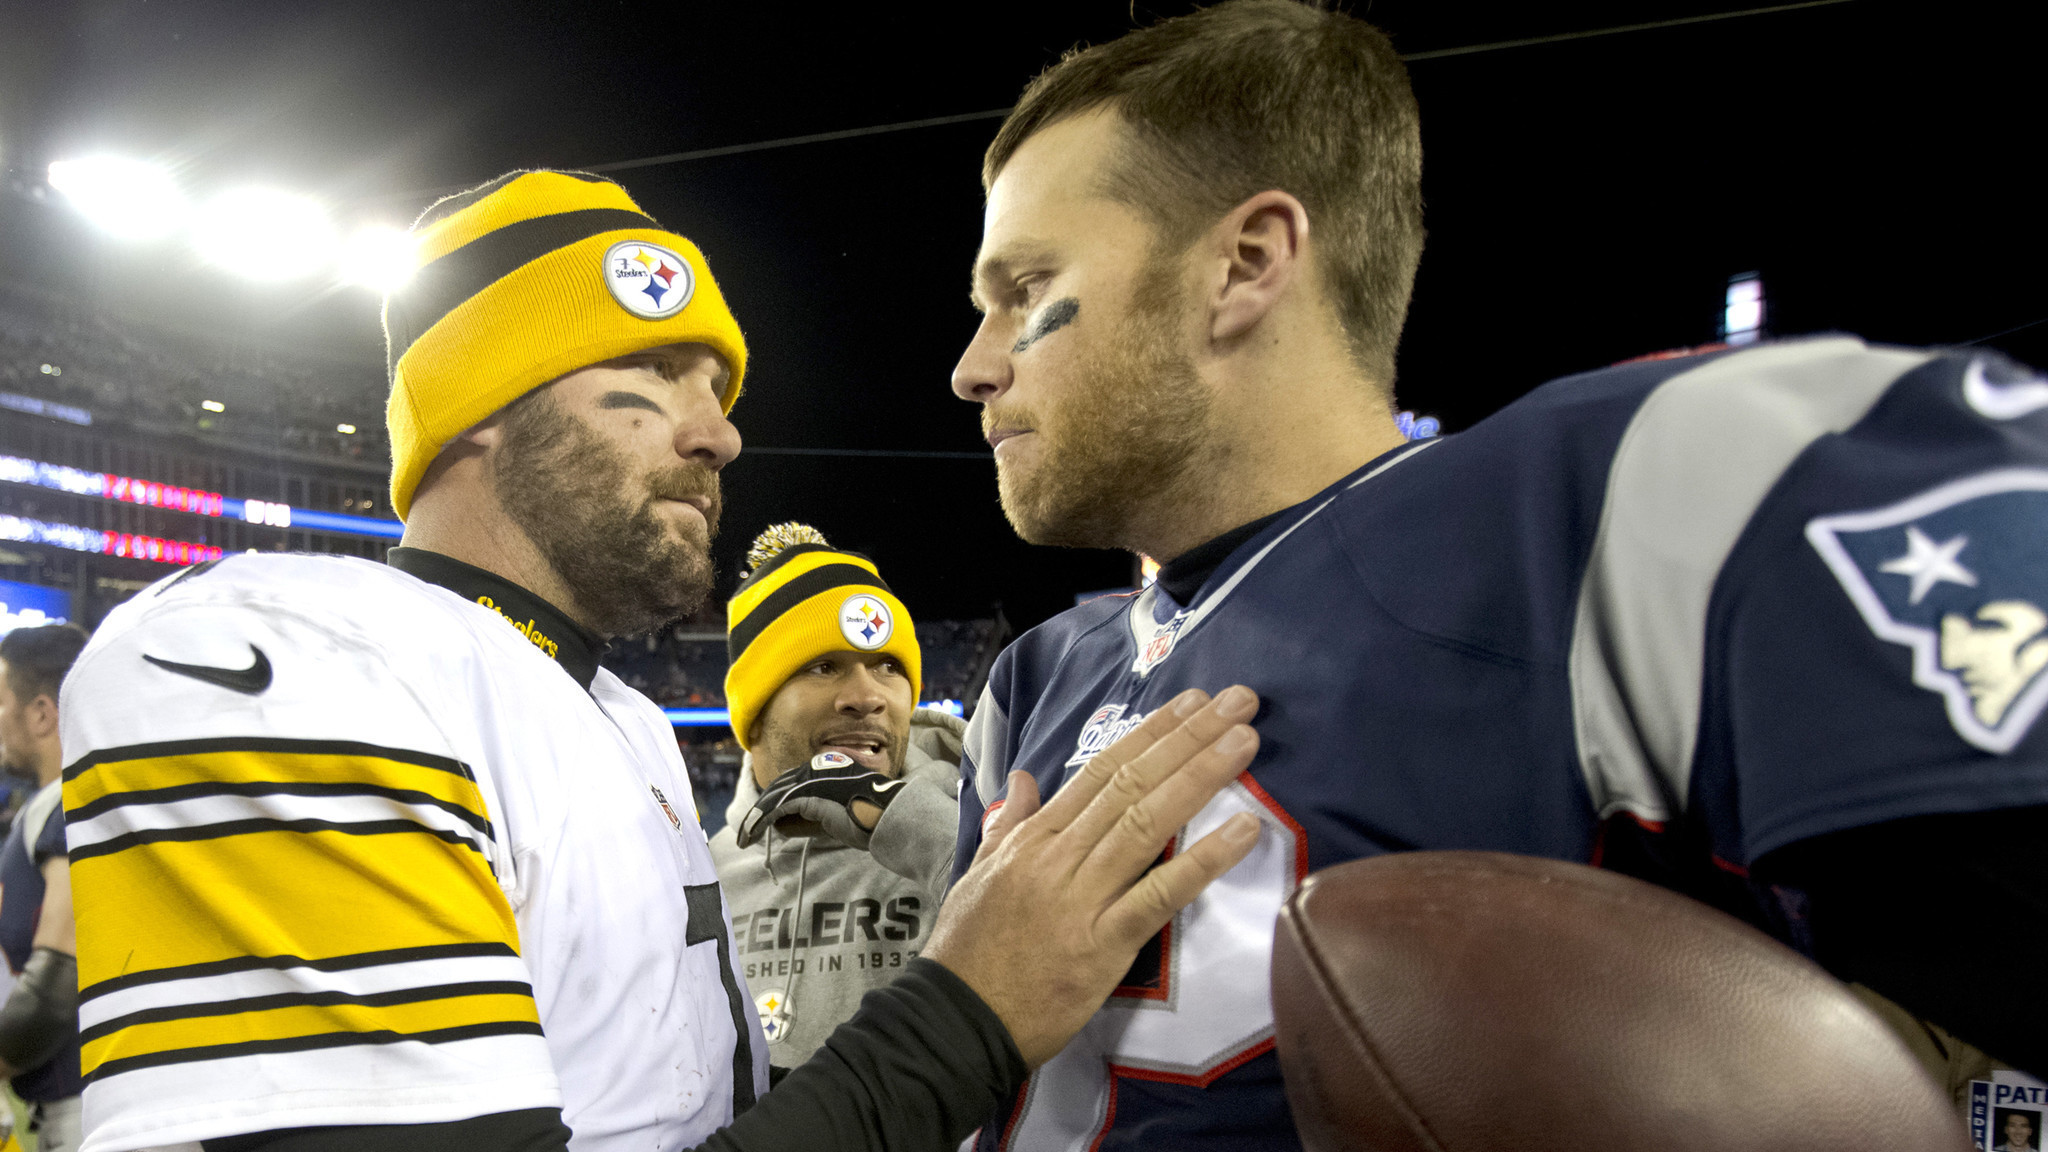 Tom Brady, Ben Roethlisberger, Aaron Rodgers, Matt Ryan form a high-quality quarterback quartet in NFL playoffs